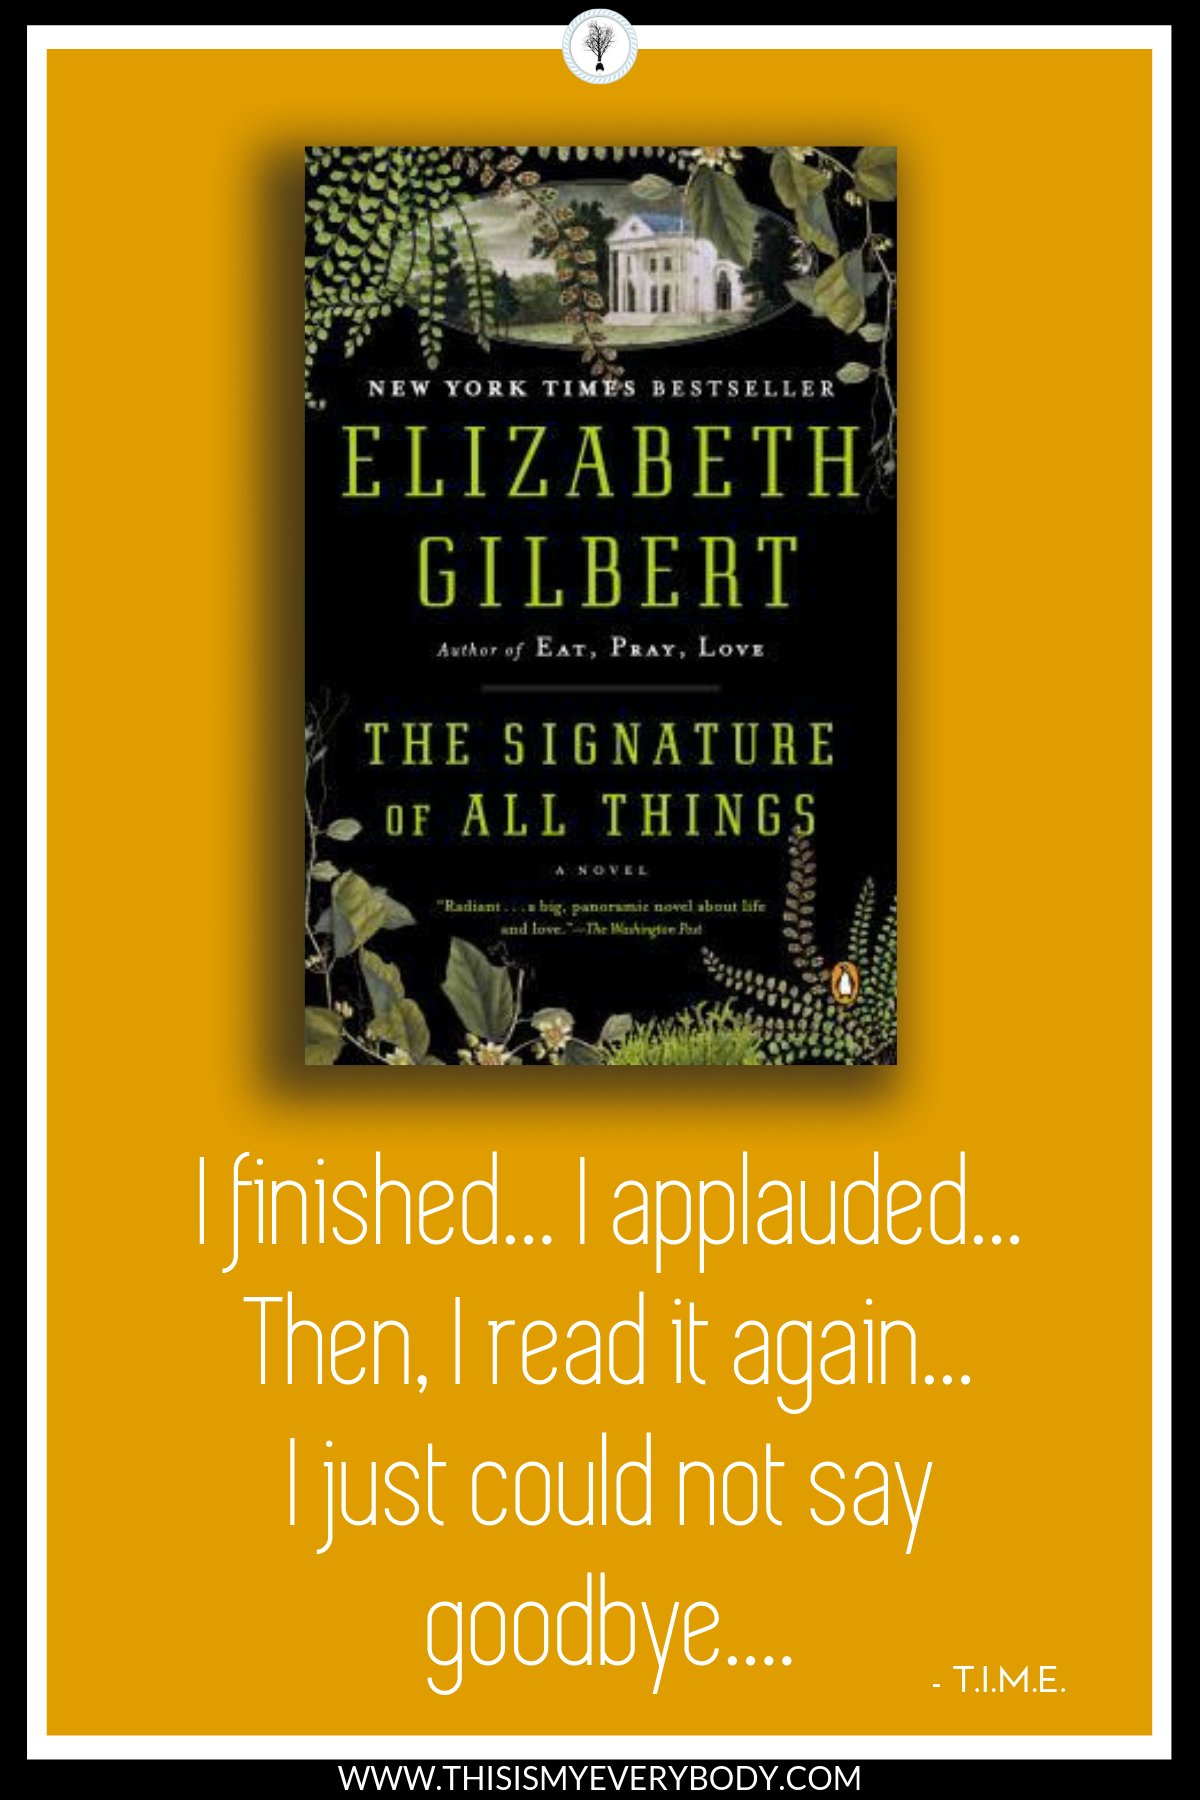 Who ever thought the world of mosses would leave you breathless? Fearless, vulnerable. Intelligent, naive. Cultured, primitive. Boundless, miniscule. These are all words that describe Alma Whittaker. An extraordinary heroine. Pack your bags for an amazing journey. The Signature of All Things by Elizabeth Gilbert.